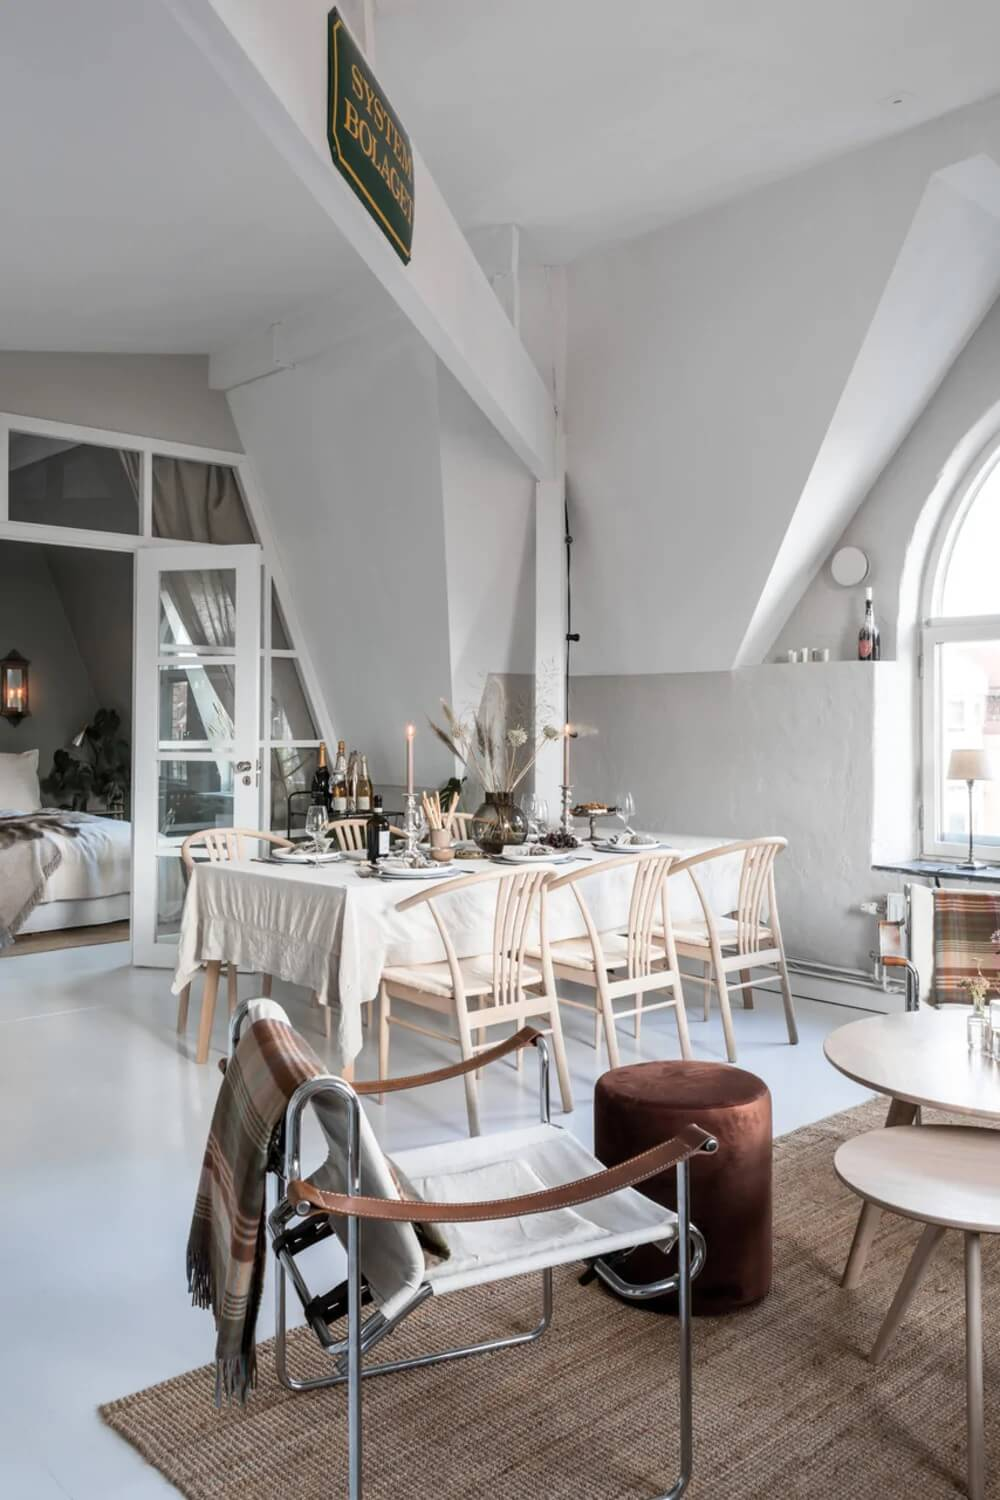 An Attic Apartment Turned Bright with White Paint and Glass Walls